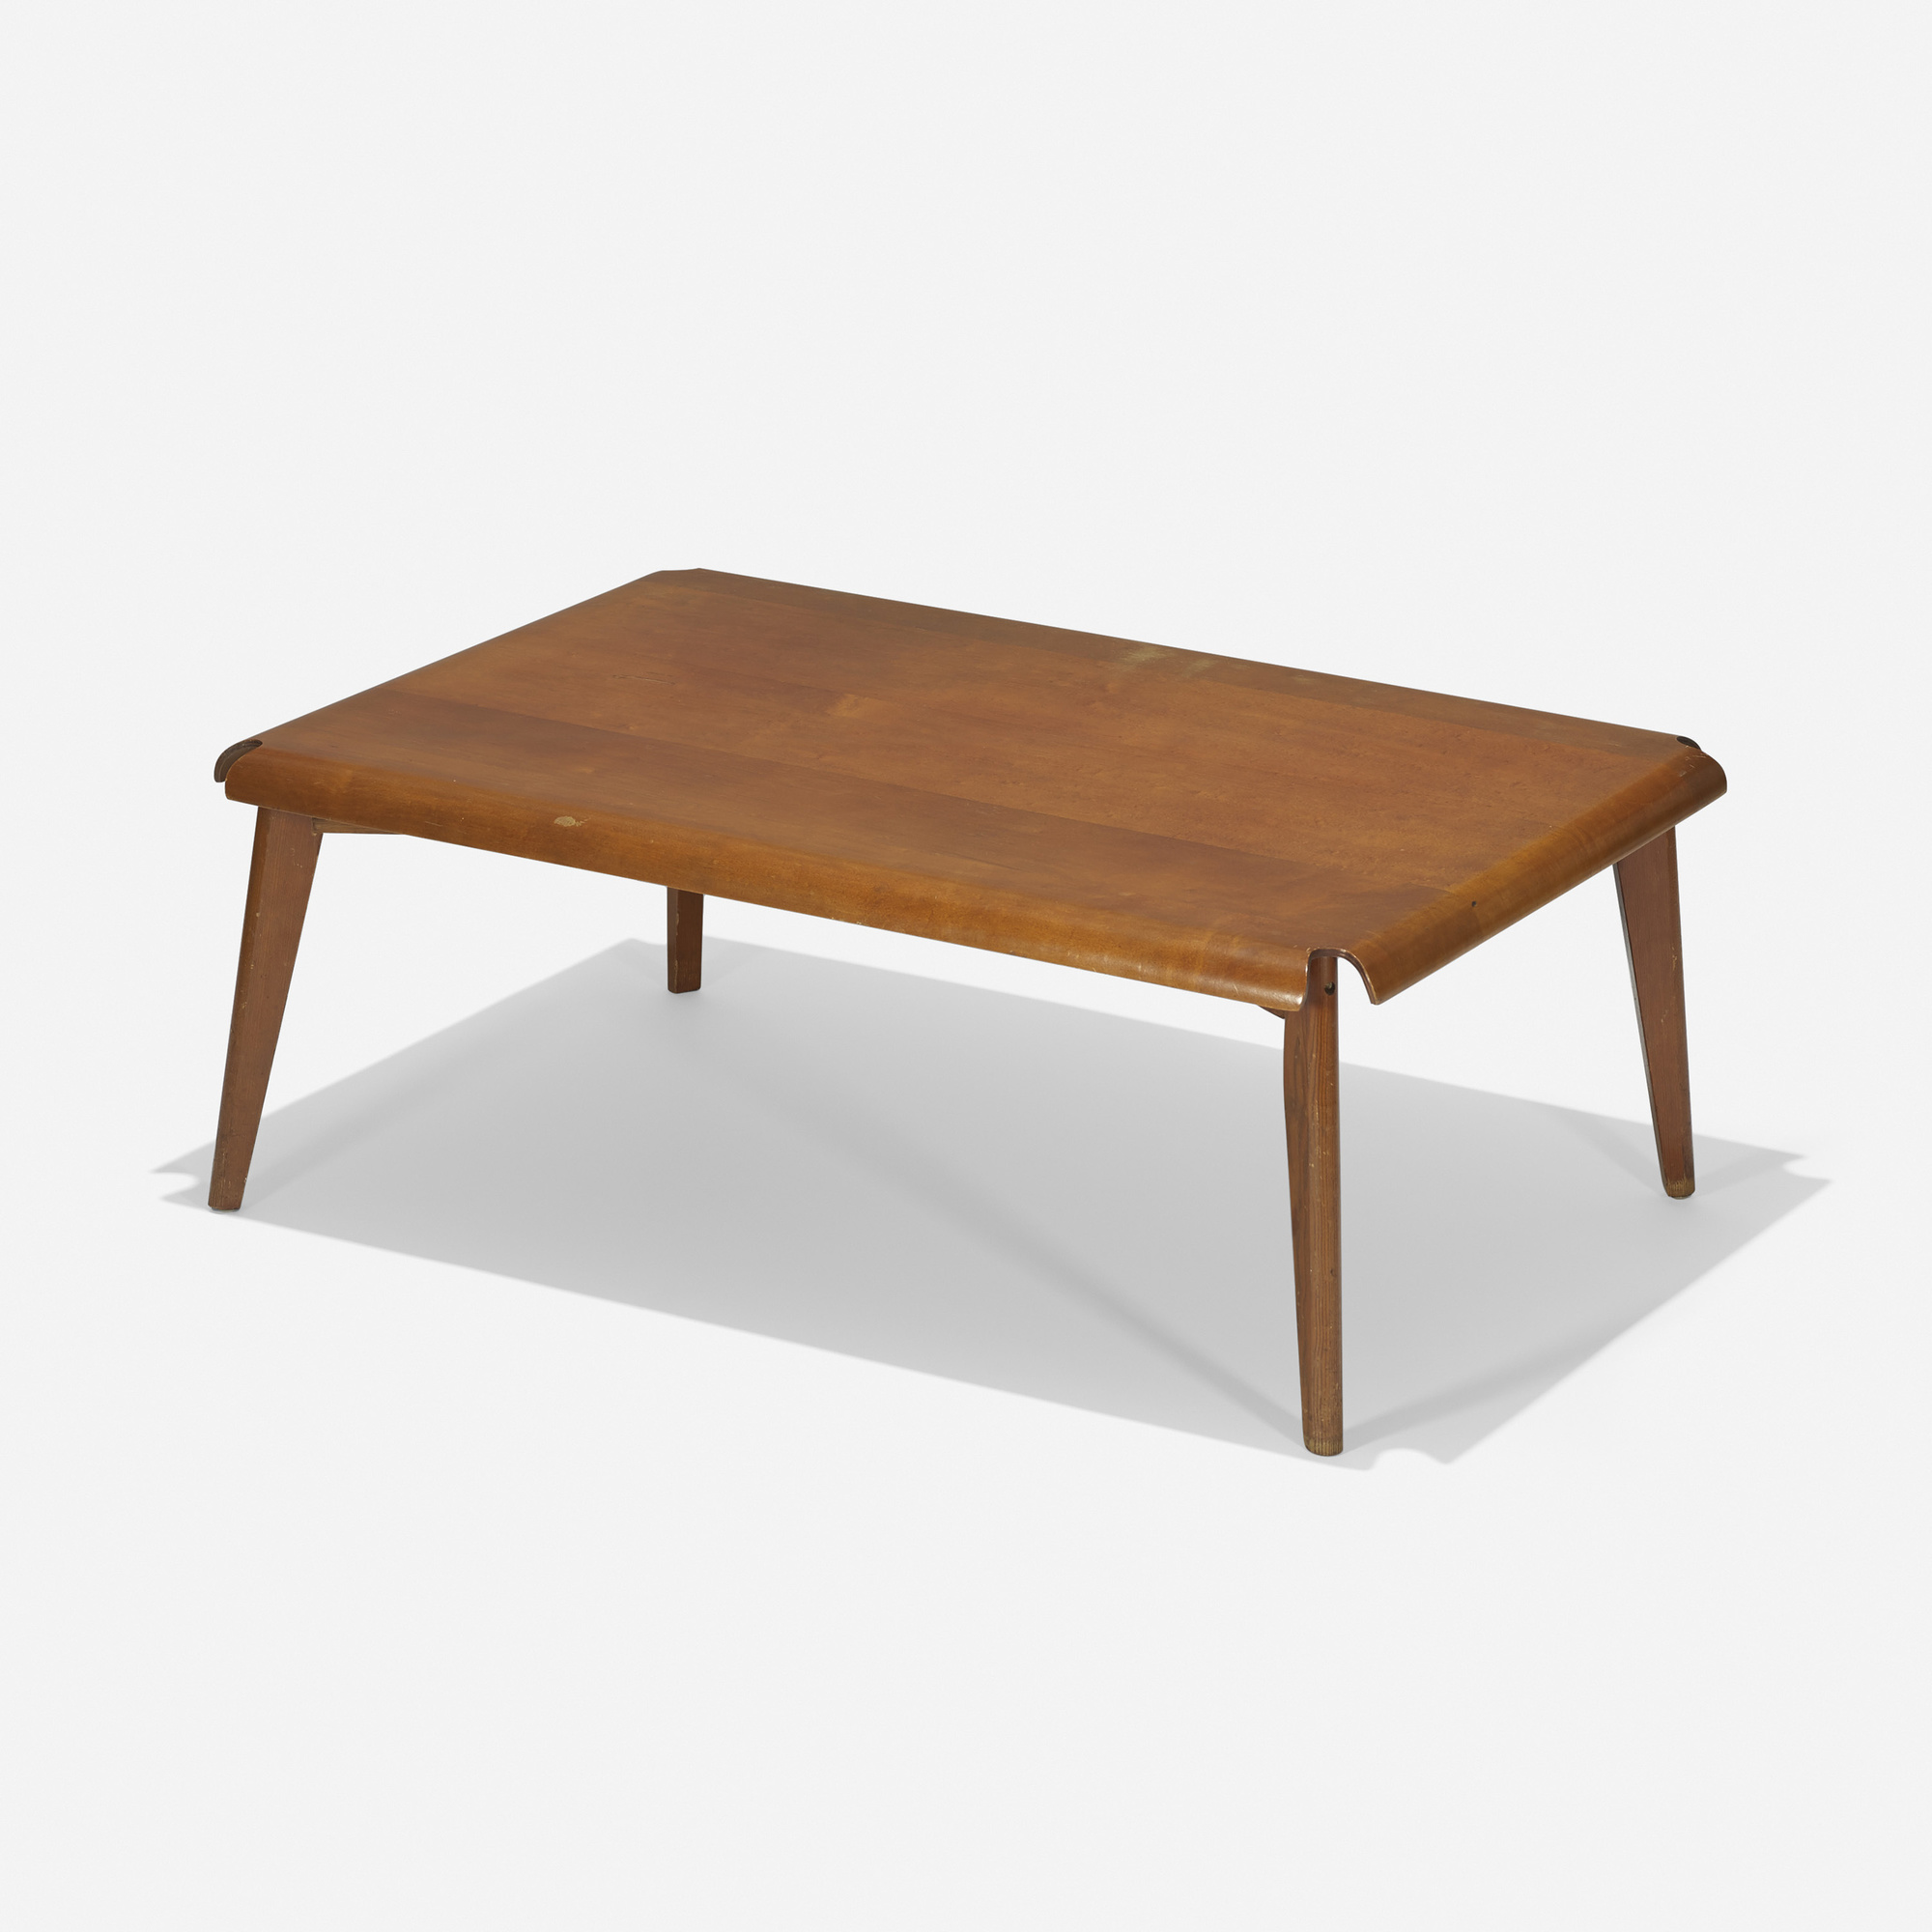 119: Charles And Ray Eames / Rare Plywood Coffee Table (1 Of 3)